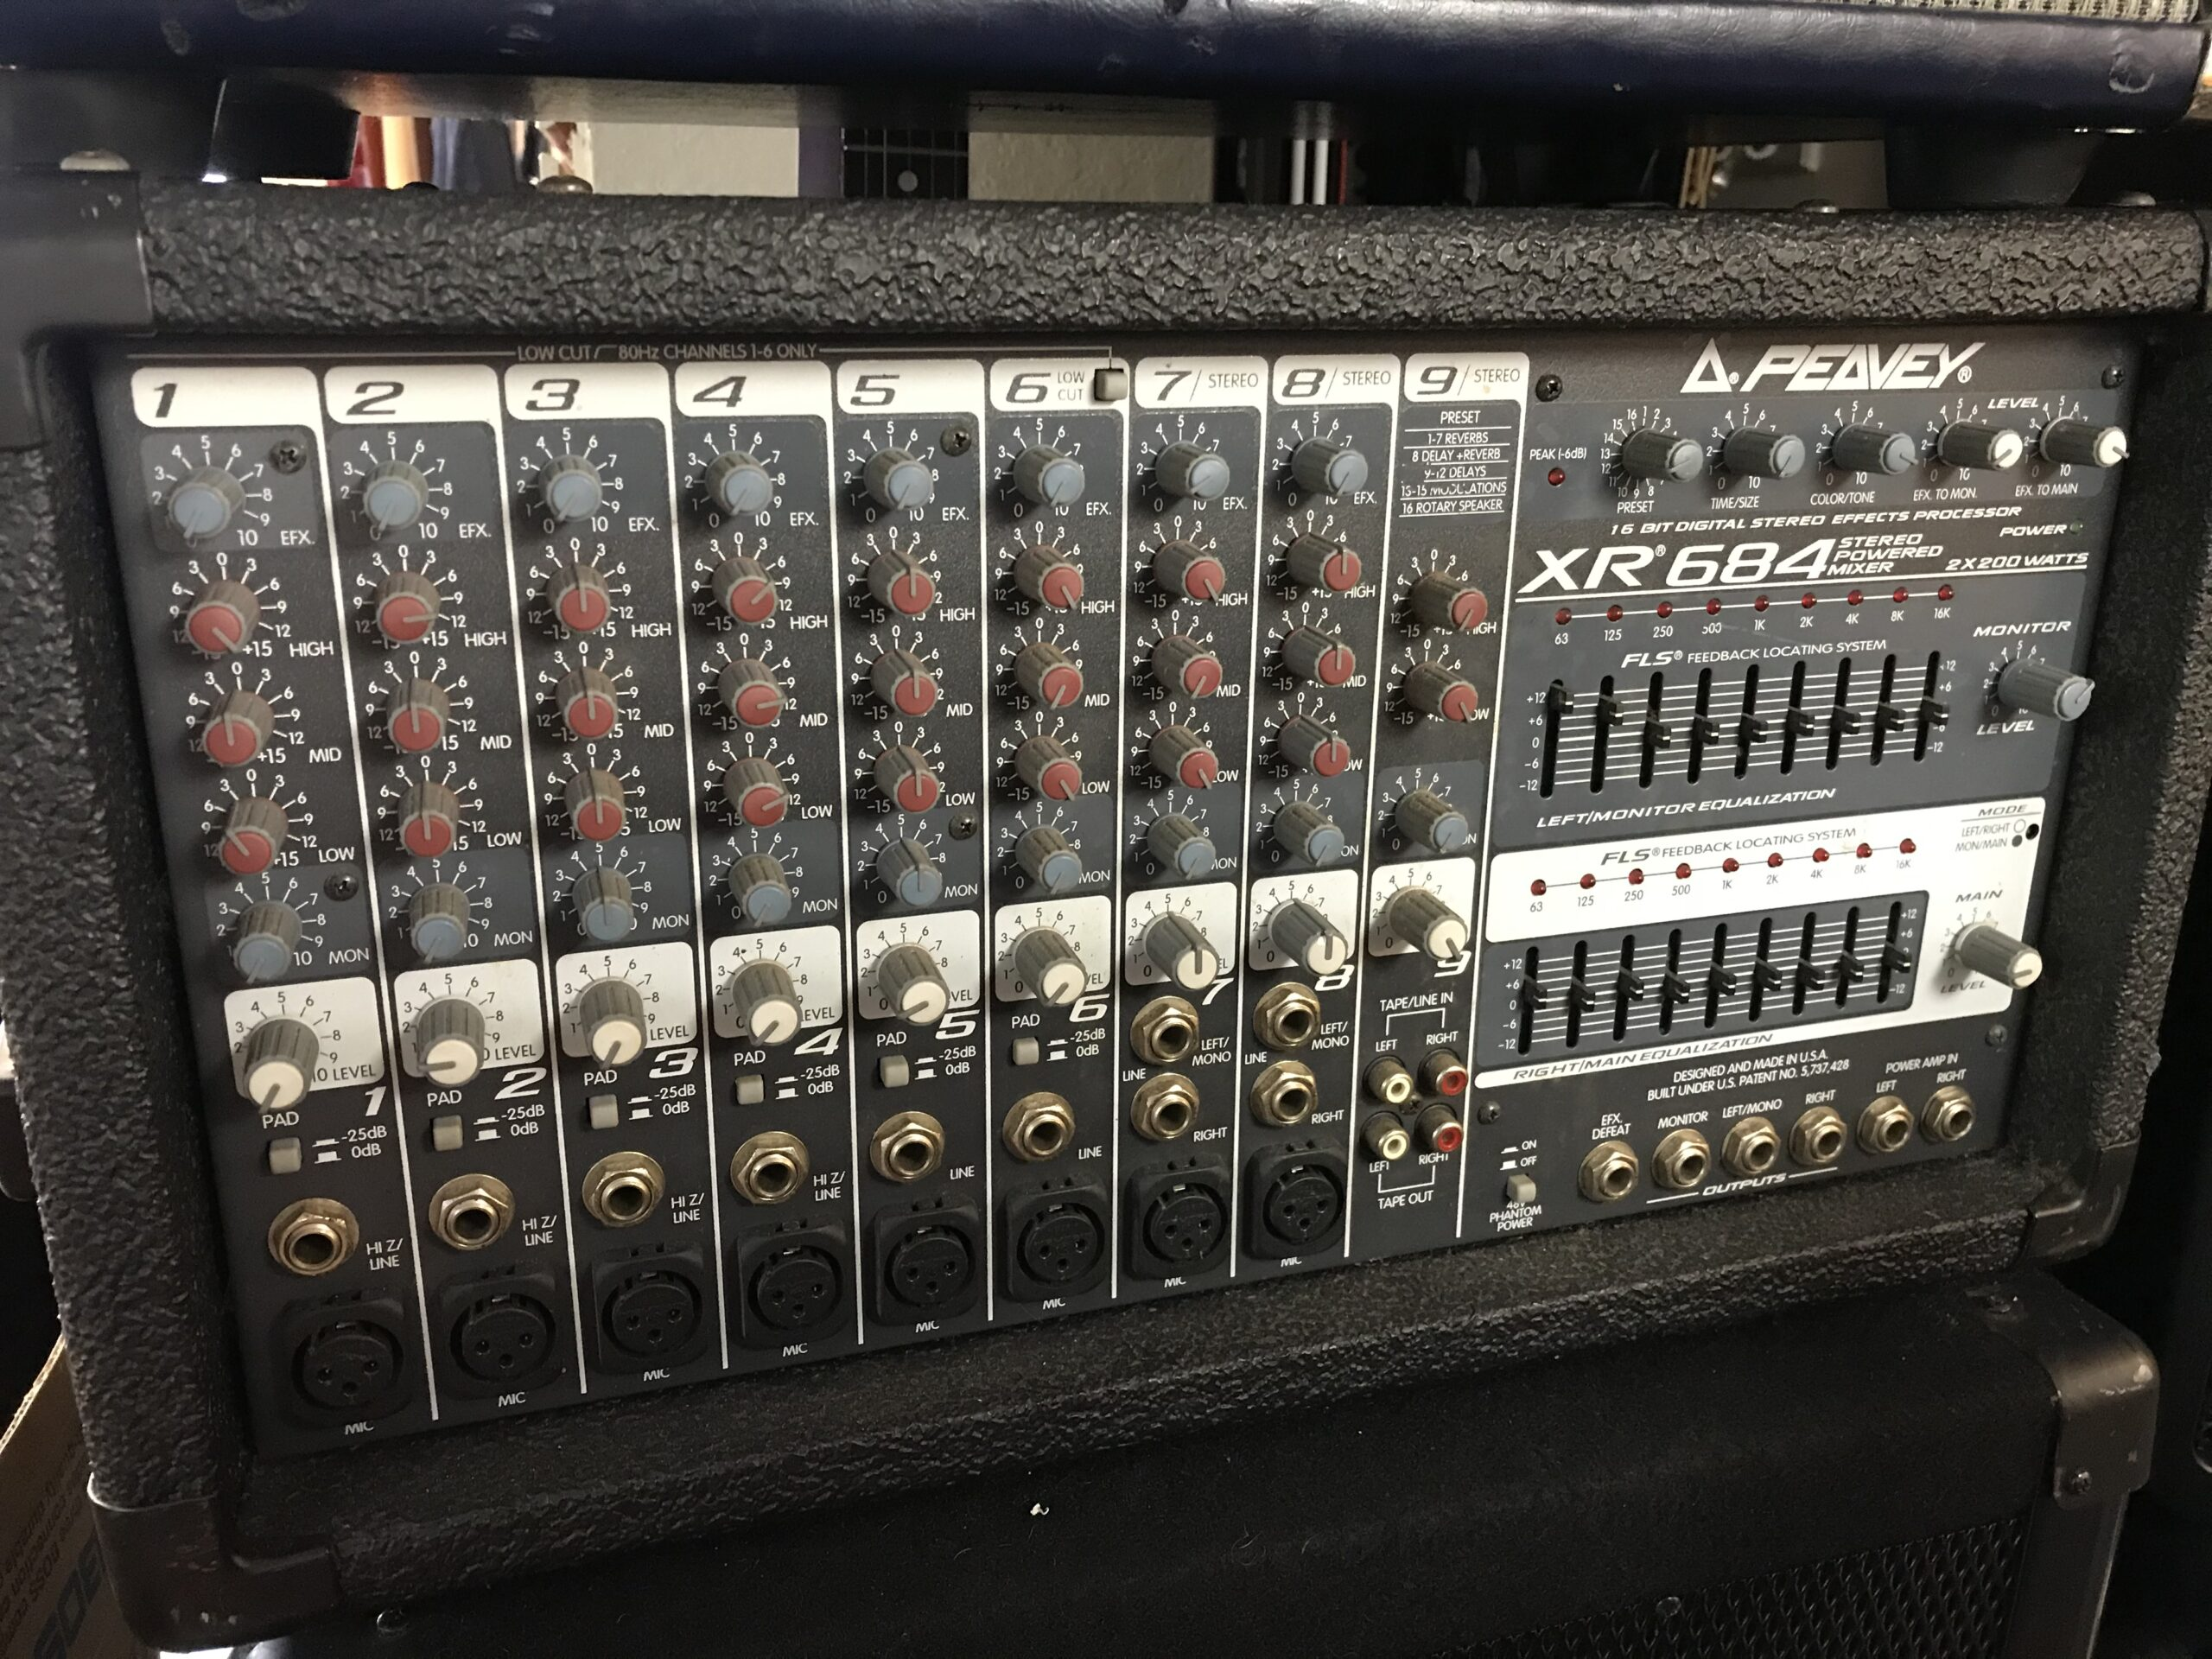 Peavey XR 684 stereo powered mixer